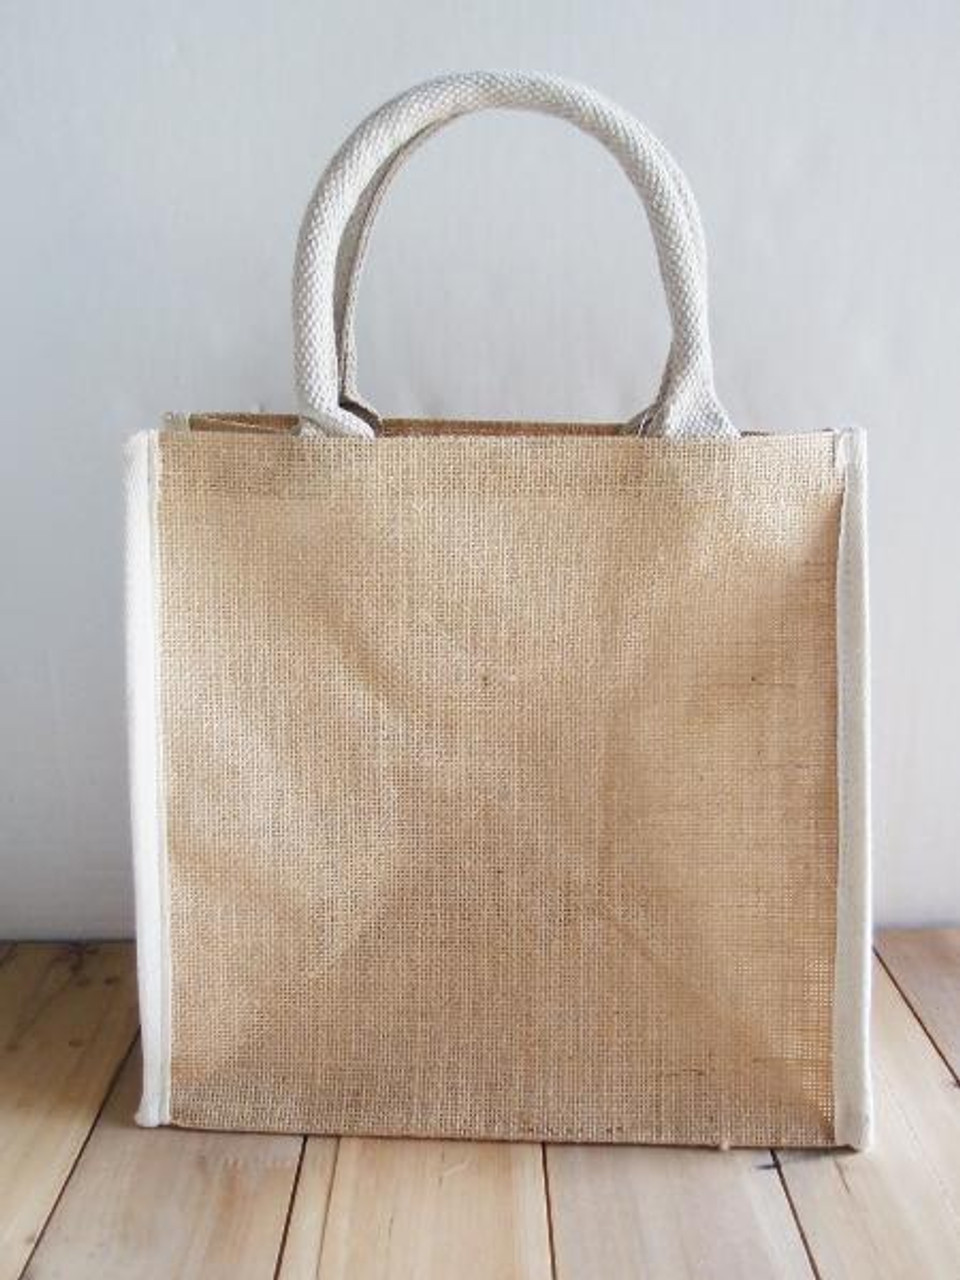 """Wholesale Jute Tote Bags for Weddings and Events, Jute Tote Bag with White Cotton Trim 12"""" W x 12"""" H x 7 3/4"""" Gusset , B875-71"""